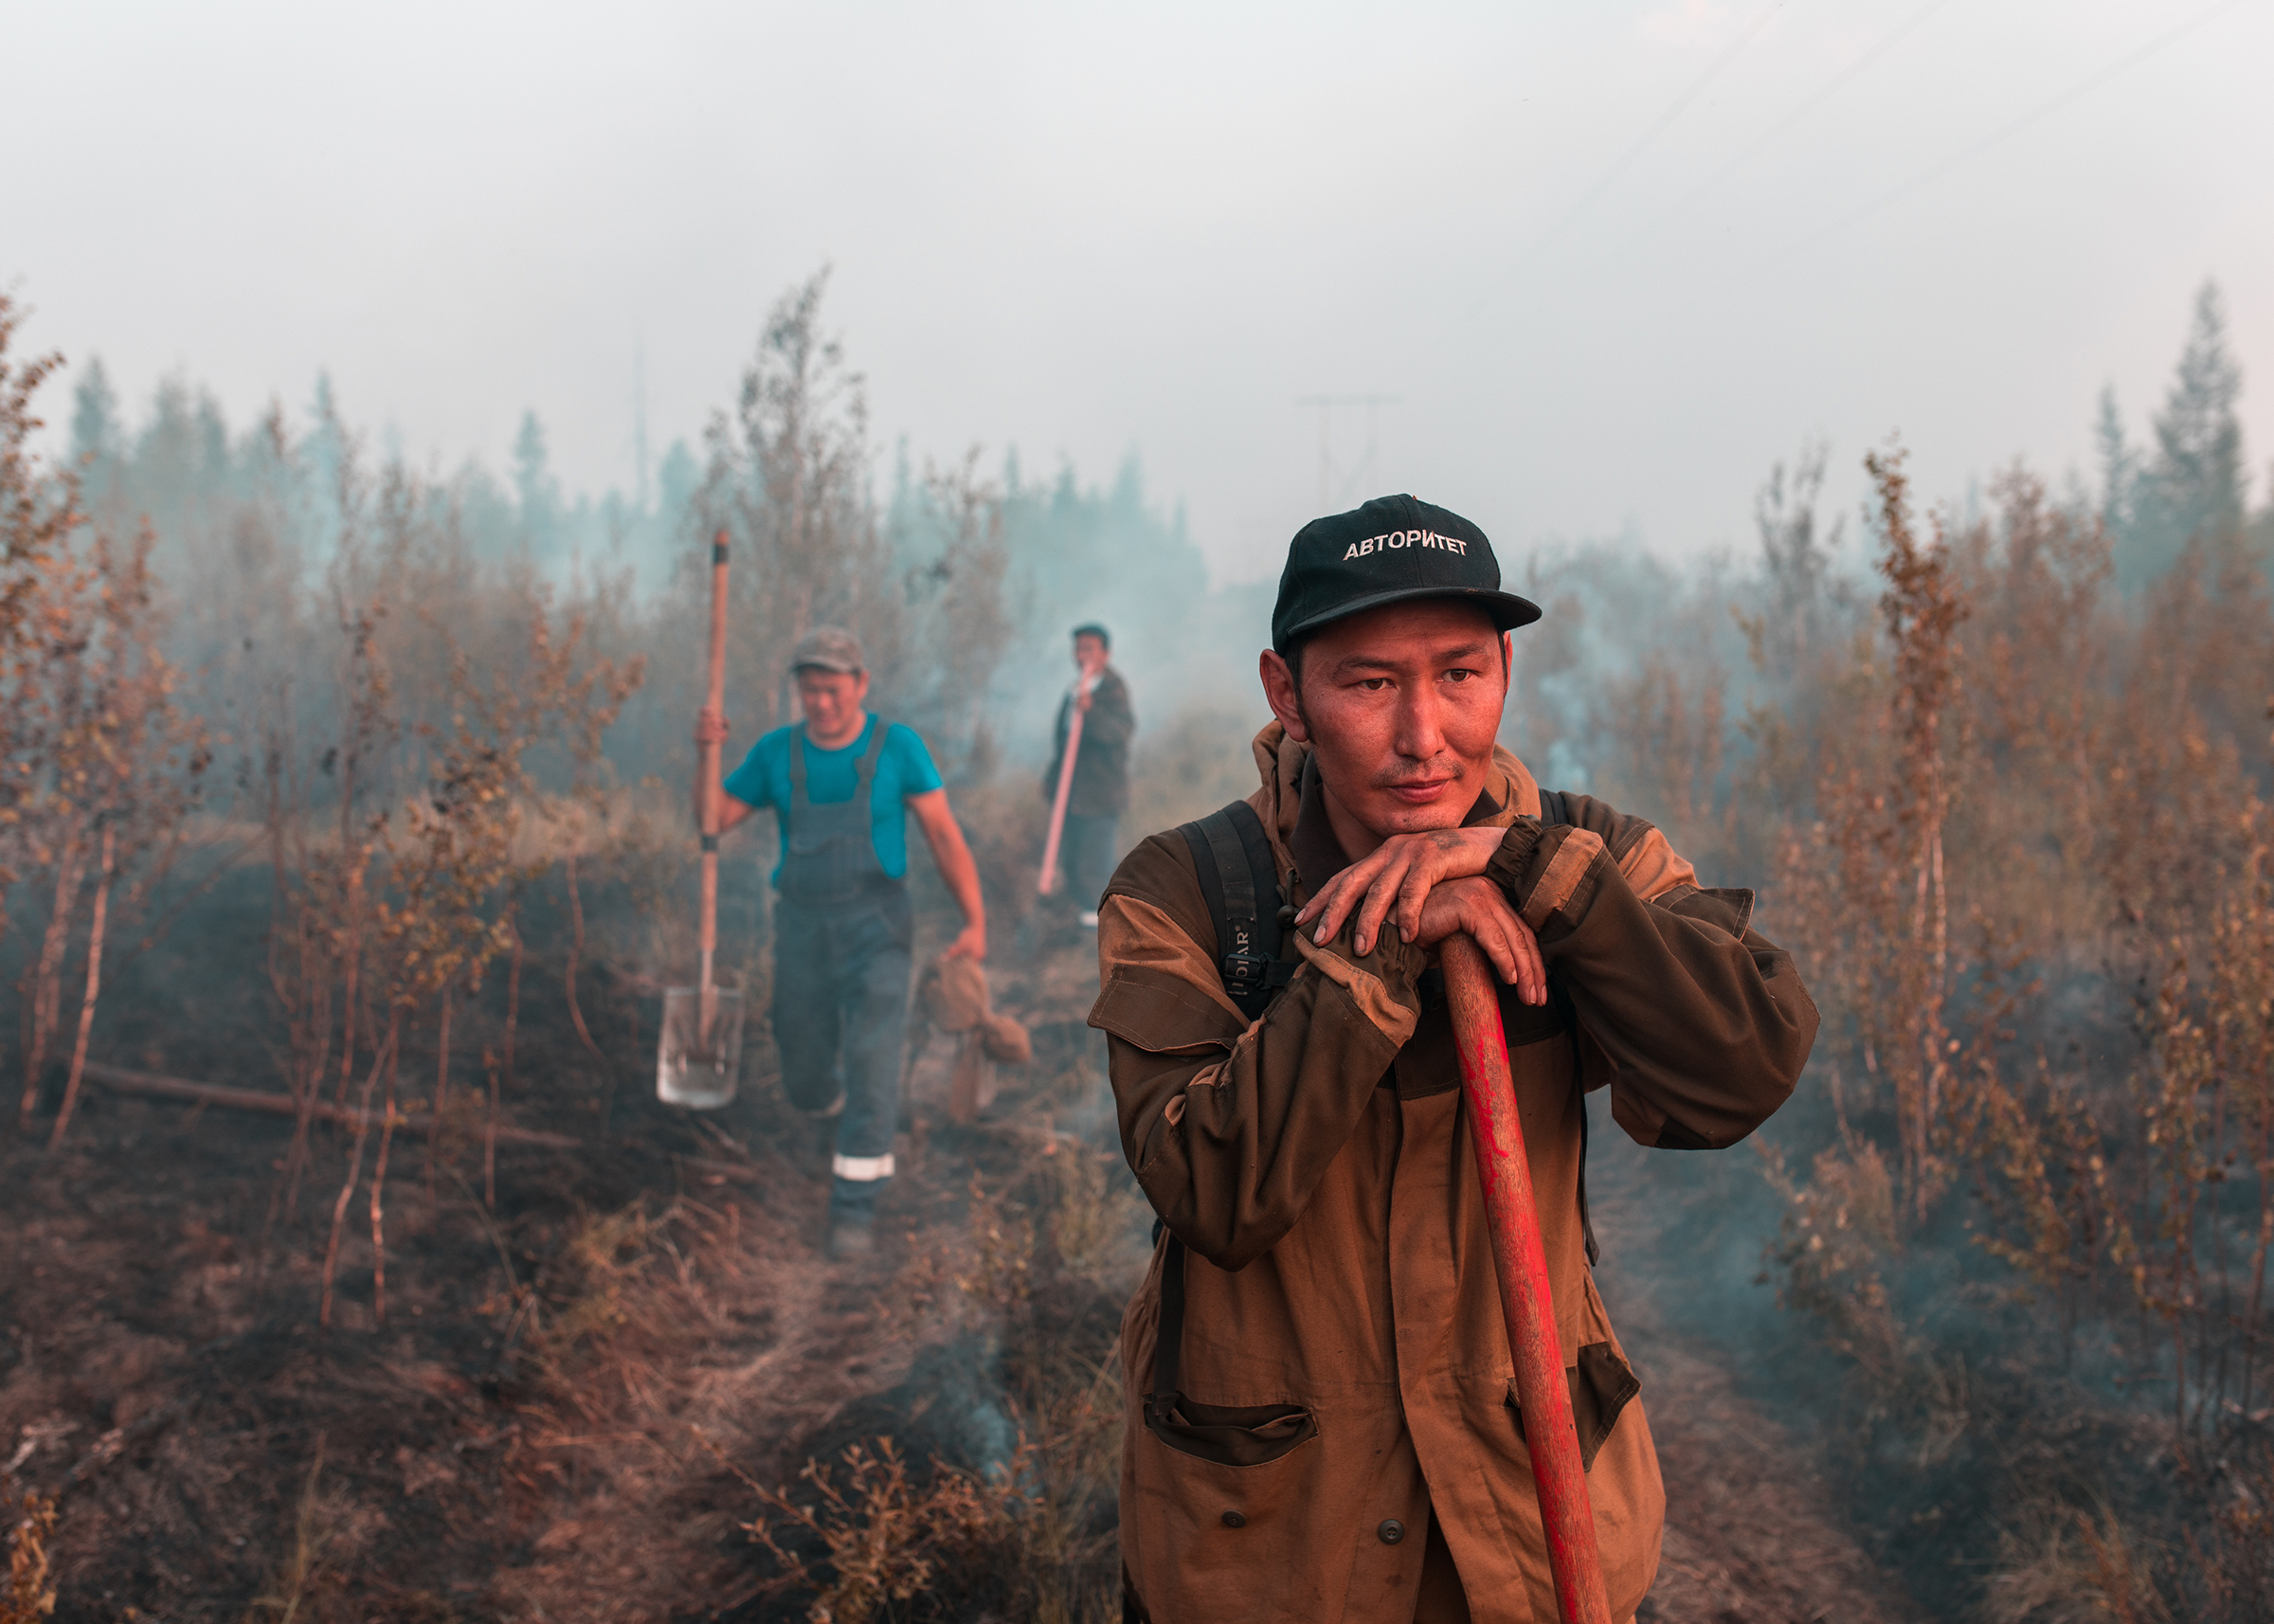 Alexander Yakovlev, 40, a volunteer from the village of Kyuerelyakh, together with his 18-year-old son Markel, has been working to extinguish wildfires near his home since early in the summer.